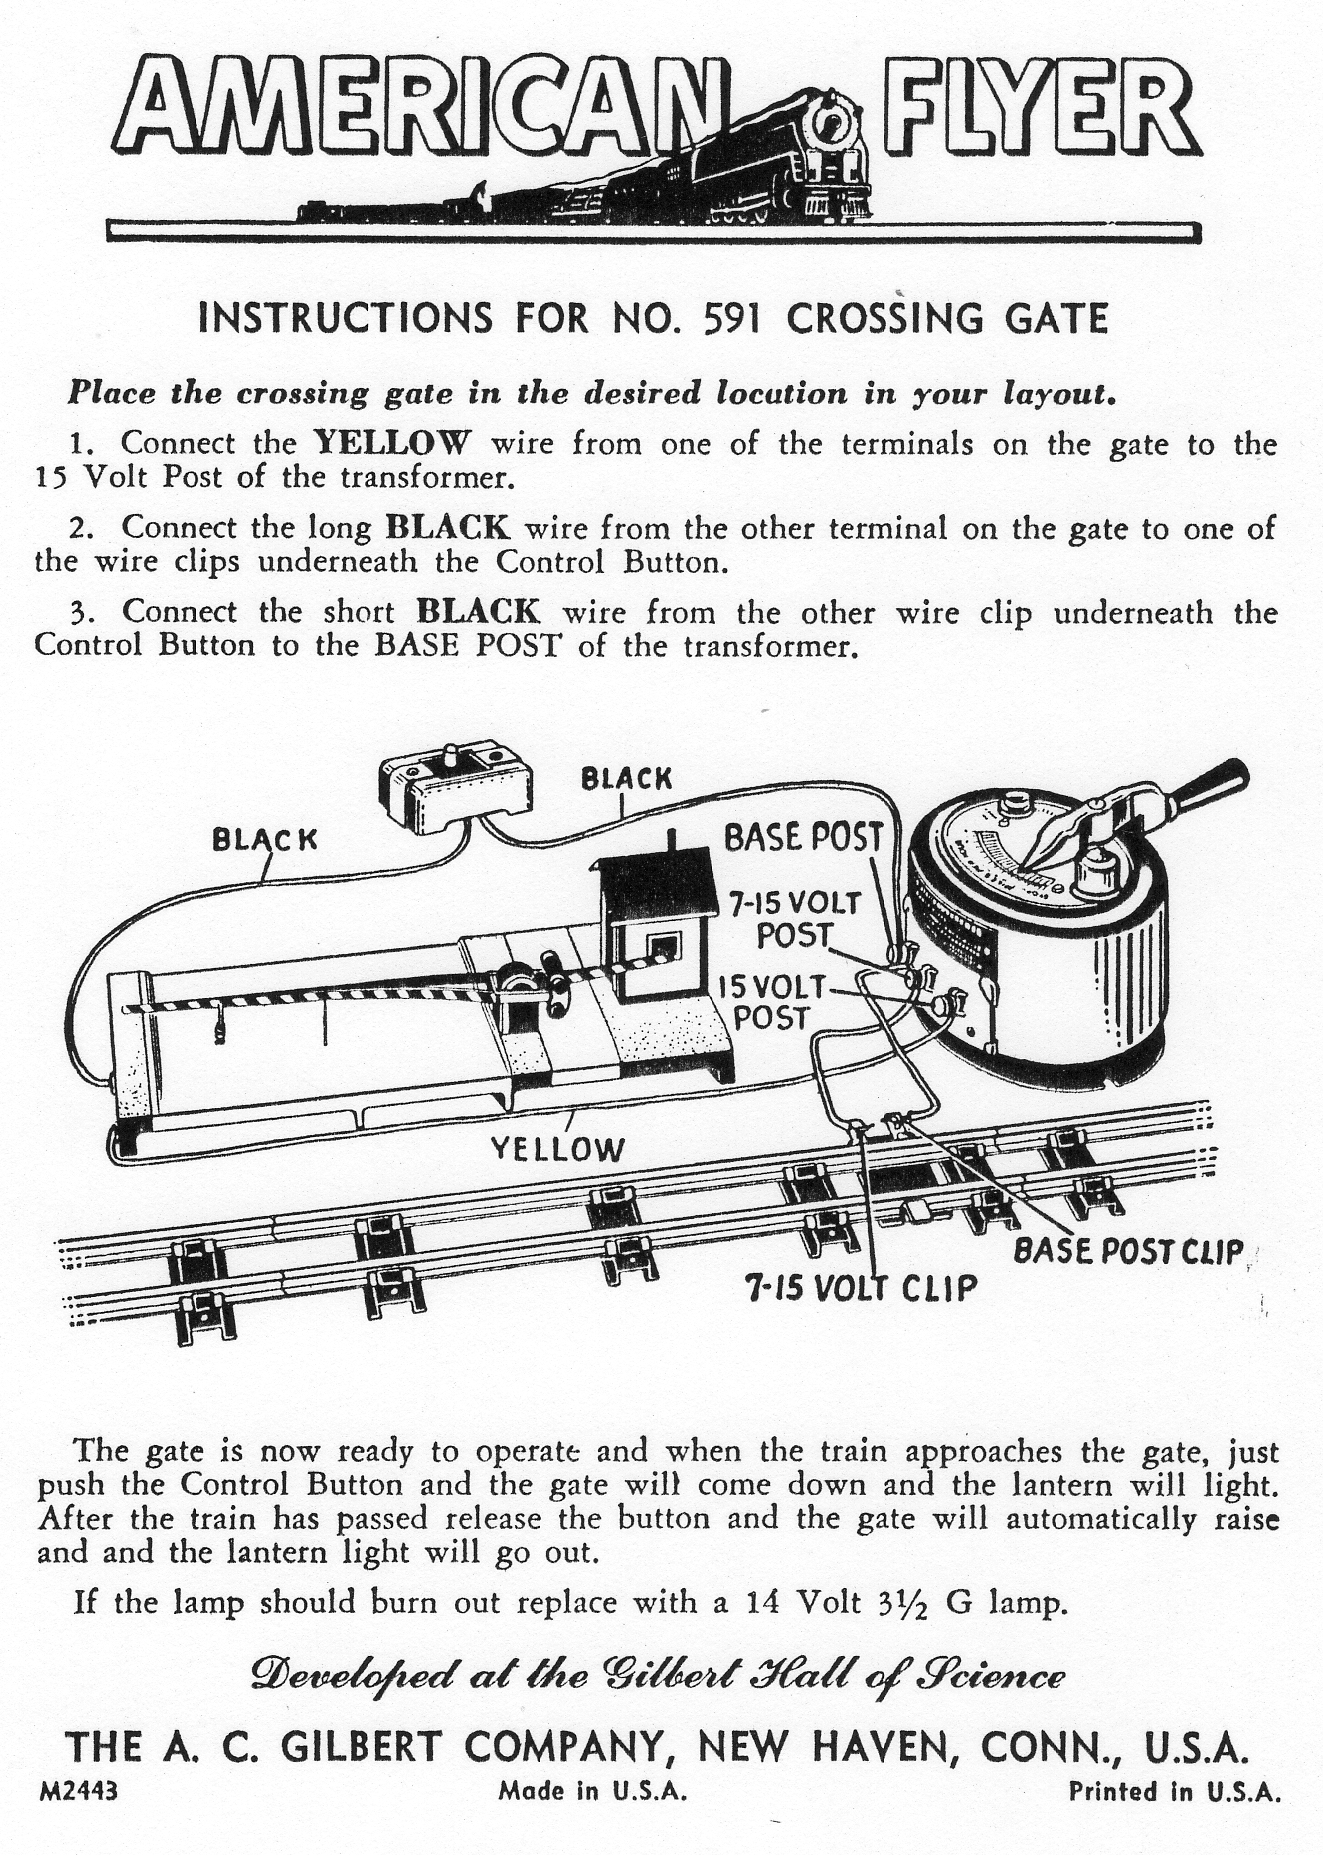 M2443 591 Crossing Gate Instructions Lo Res 001 american flyer wiring instructions traindr american flyer wiring diagrams at nearapp.co